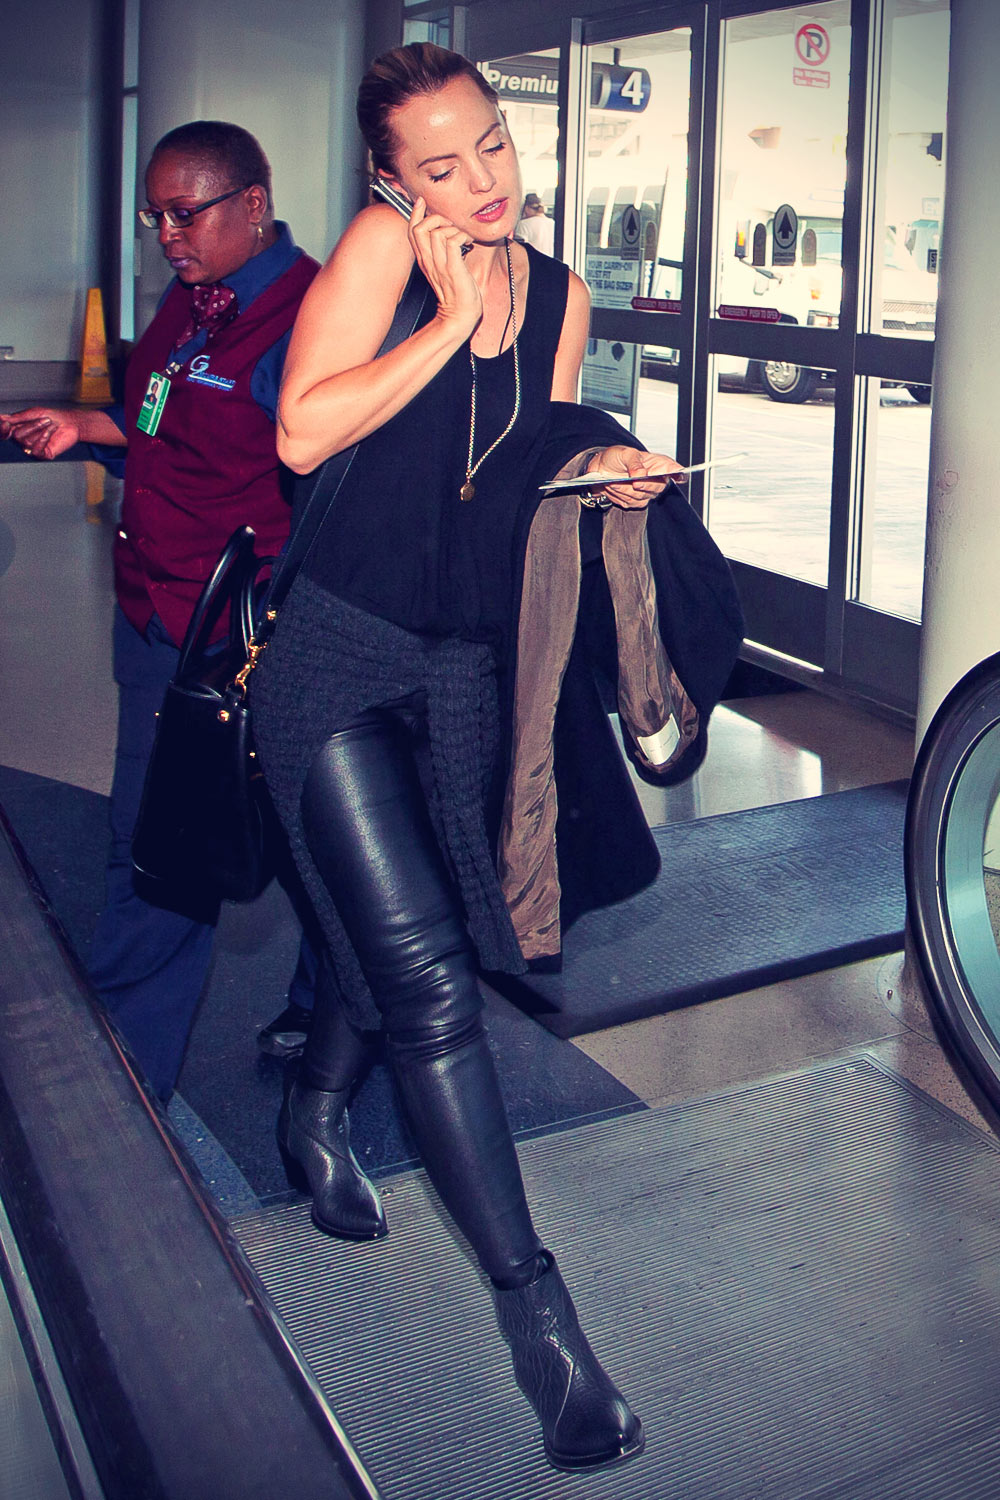 Mena Suvari at LAX Airport as she gets ready to catch a flight